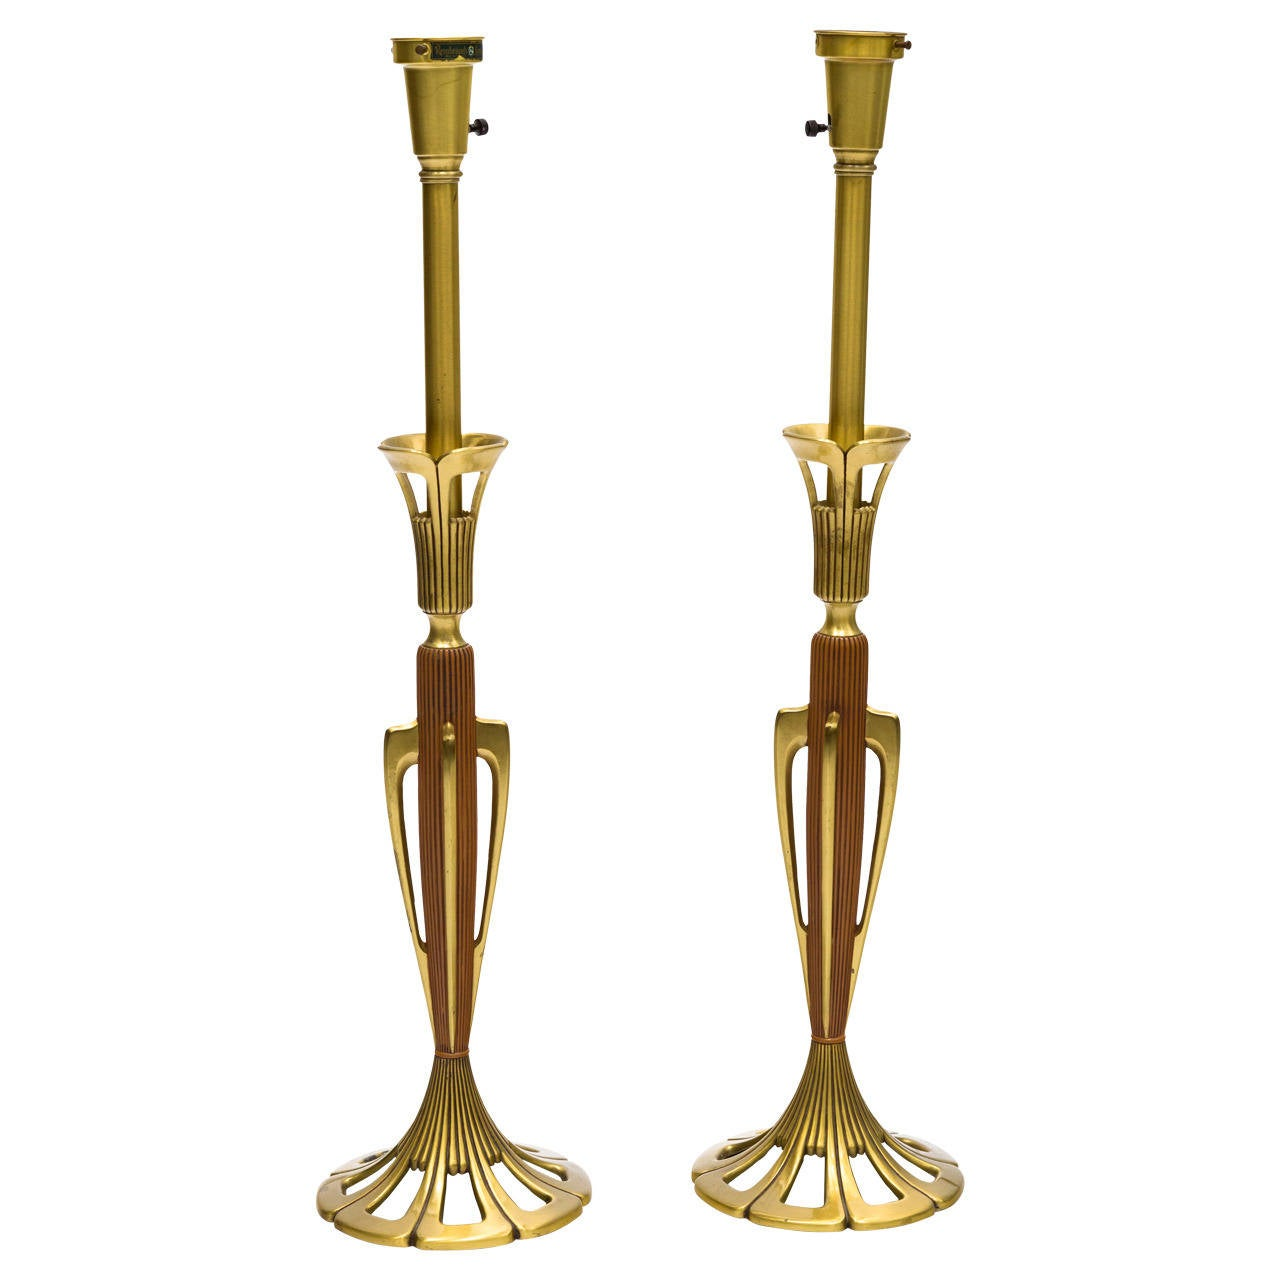 Pair of Brass Sculptural Rembrandt Table Lamps